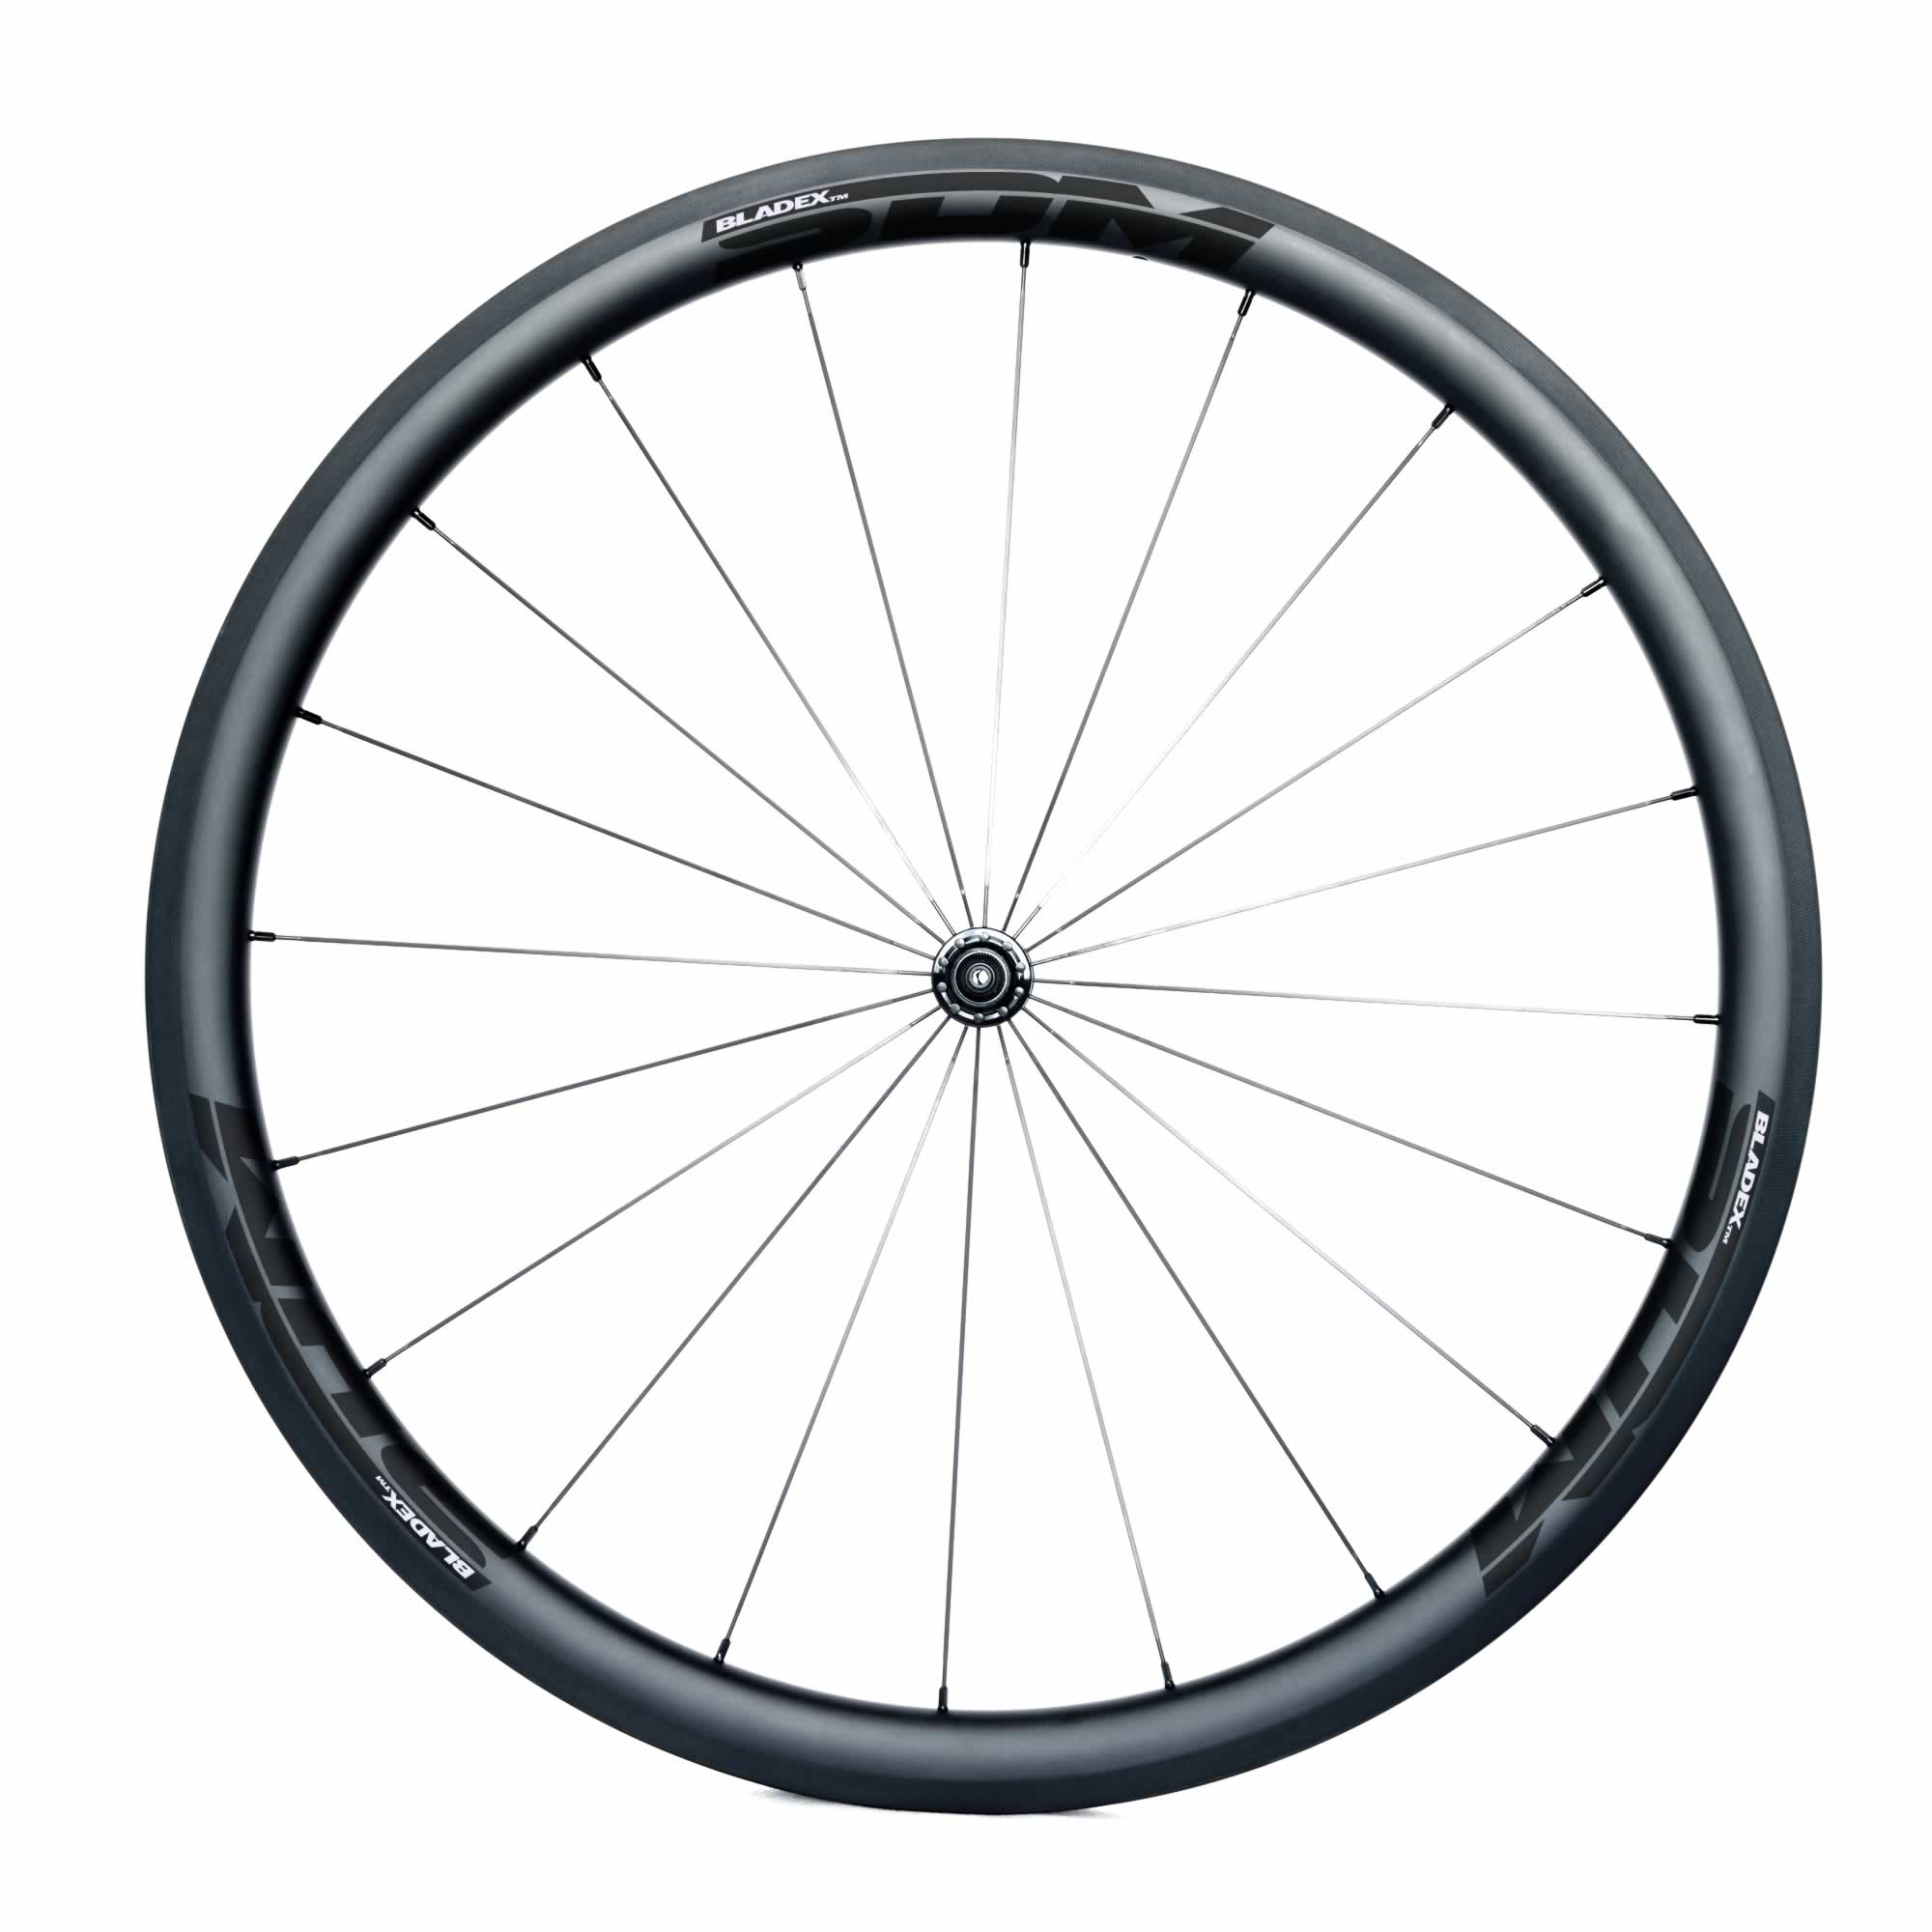 SDM 4 Carbon Road Bike Front Wheel UD Matte Classic Black Logo